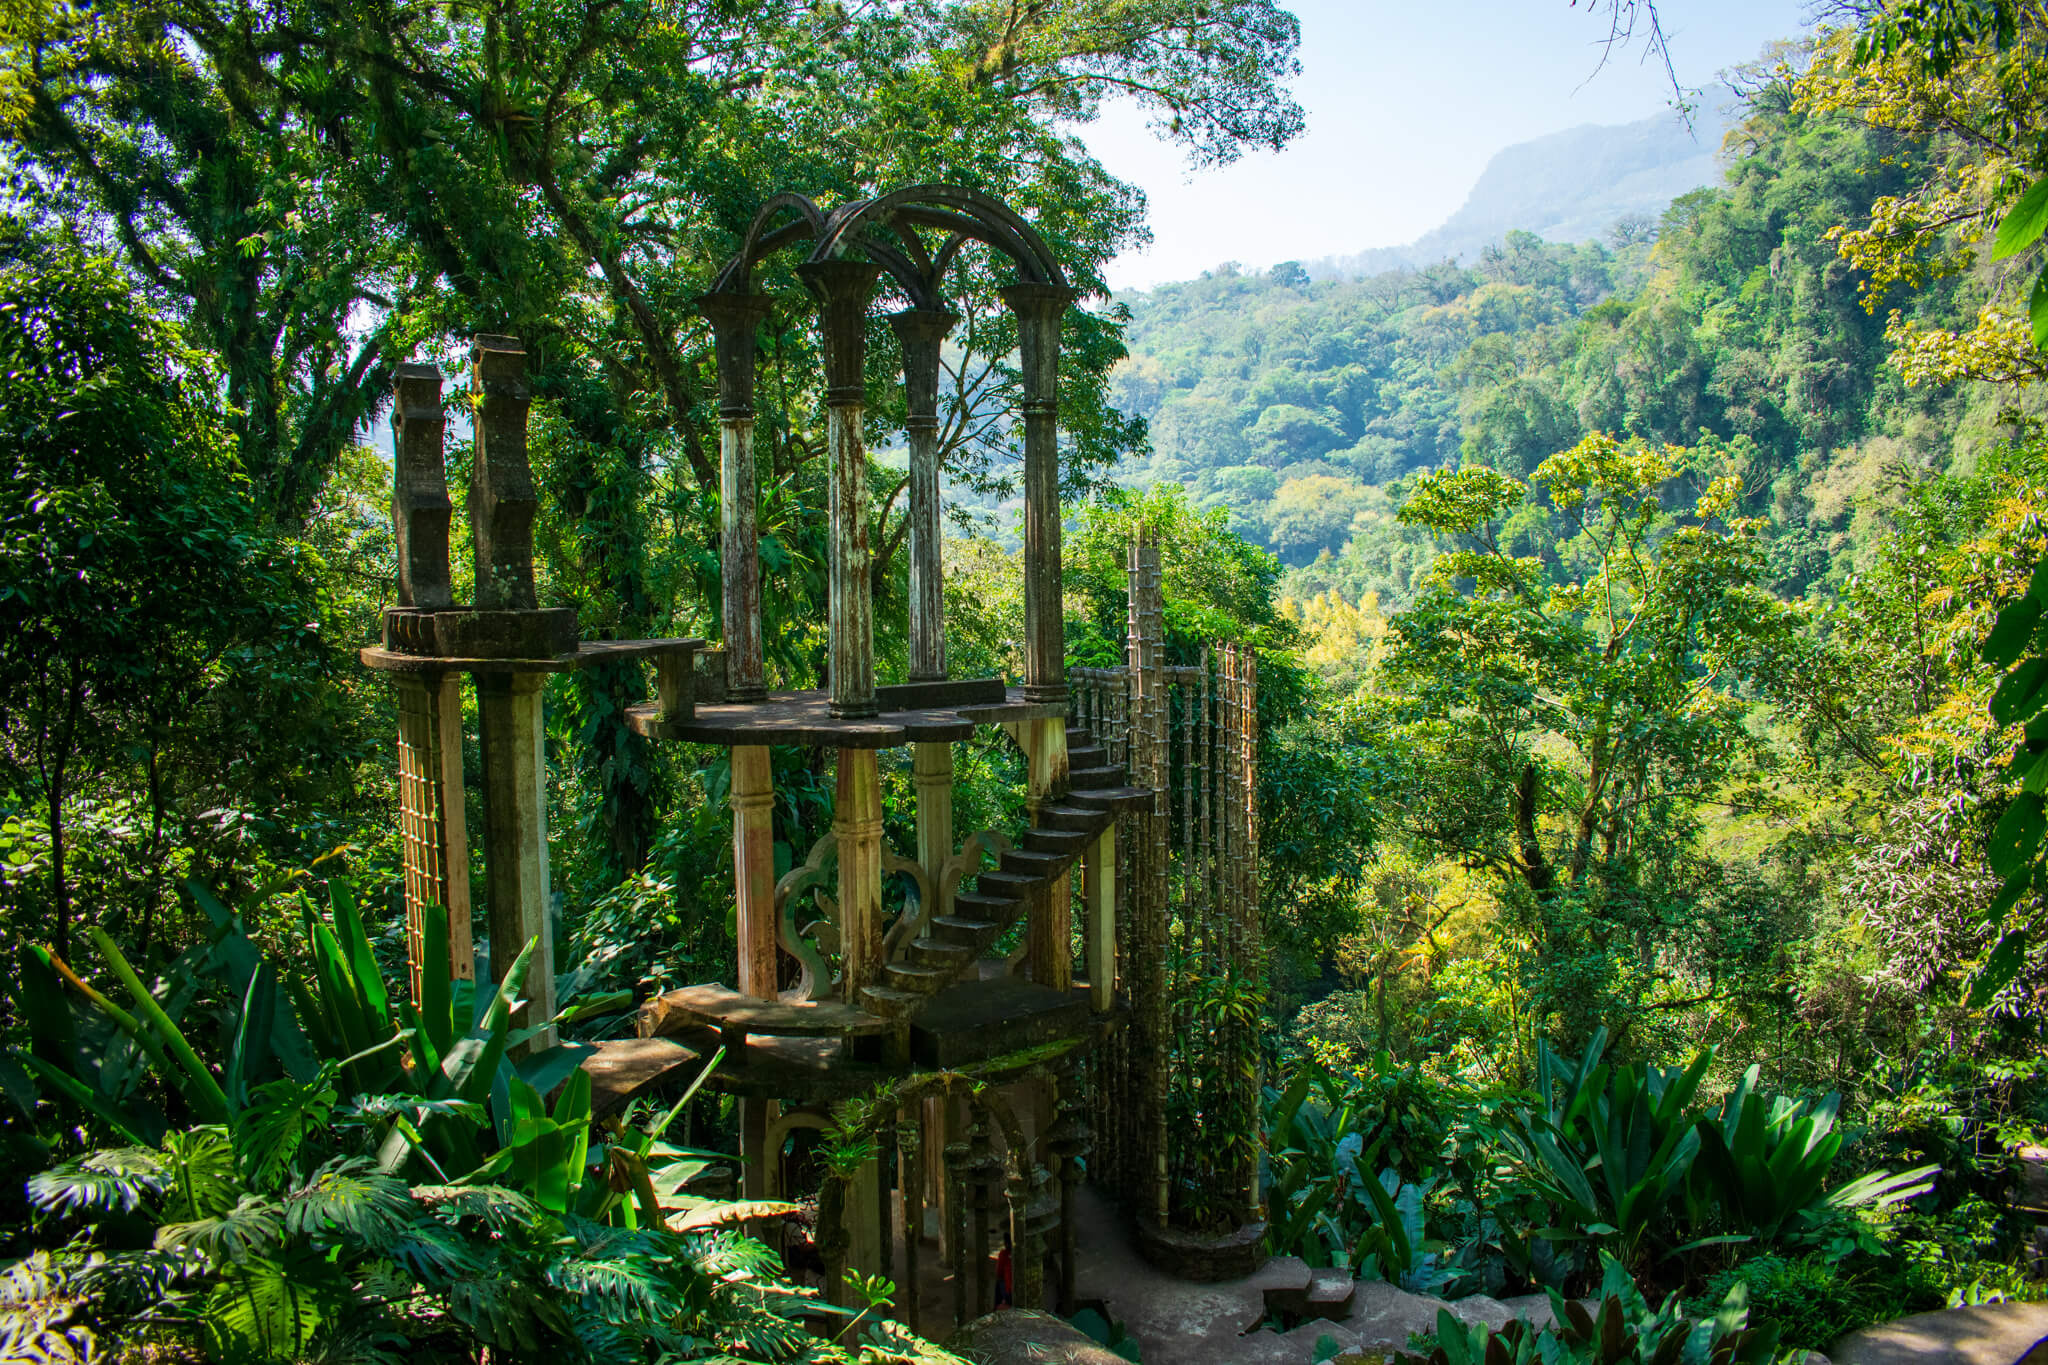 Surrealist garden sculpture in Los Pozas de Xilitla, Mexico with mountain vista in background.